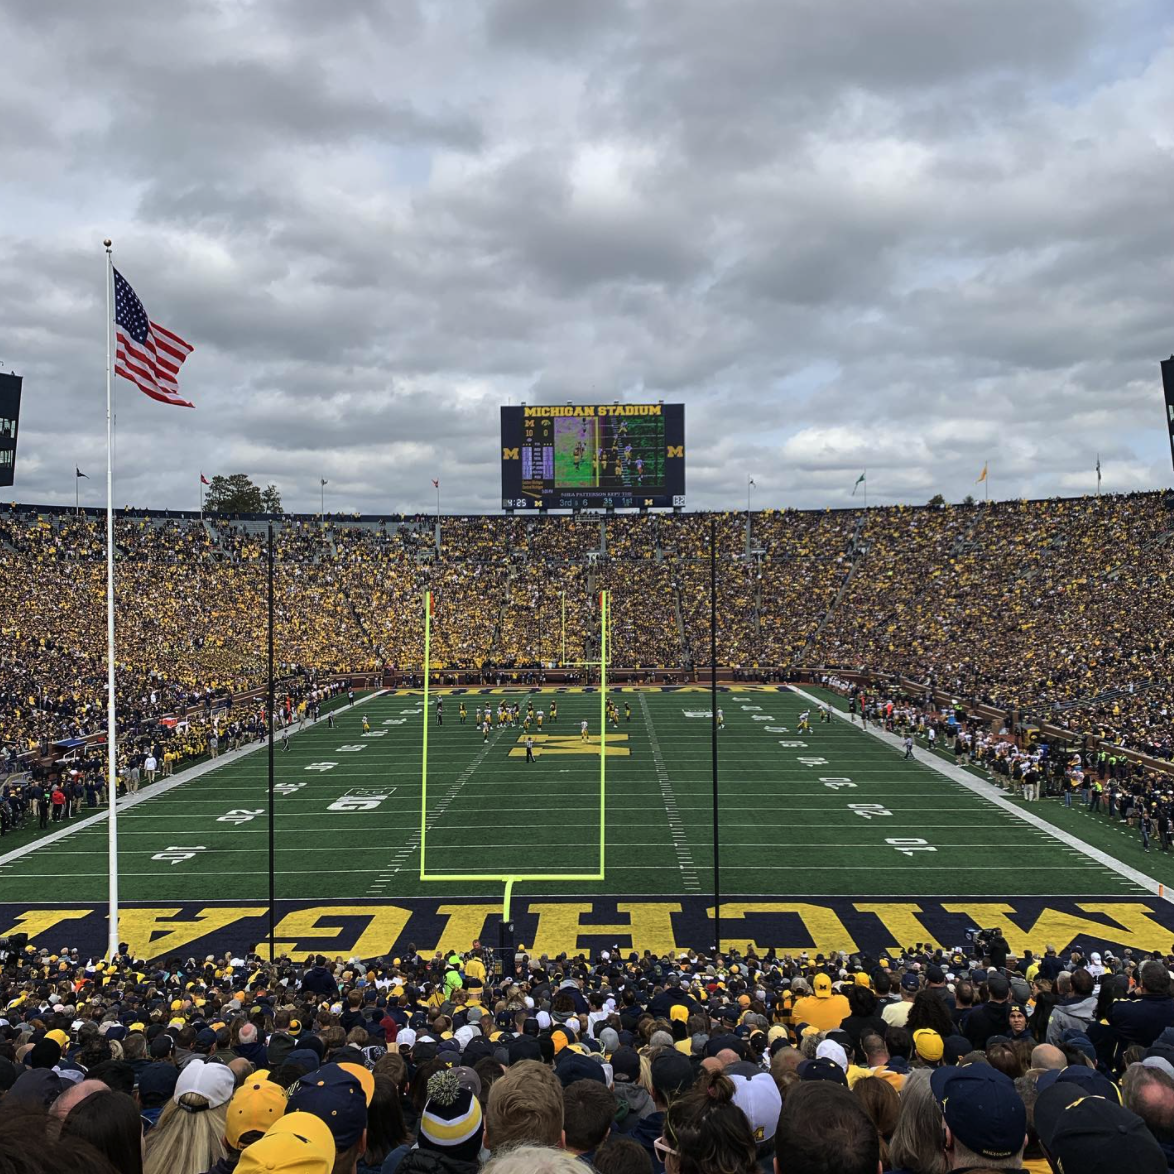 The Michigan Stadium